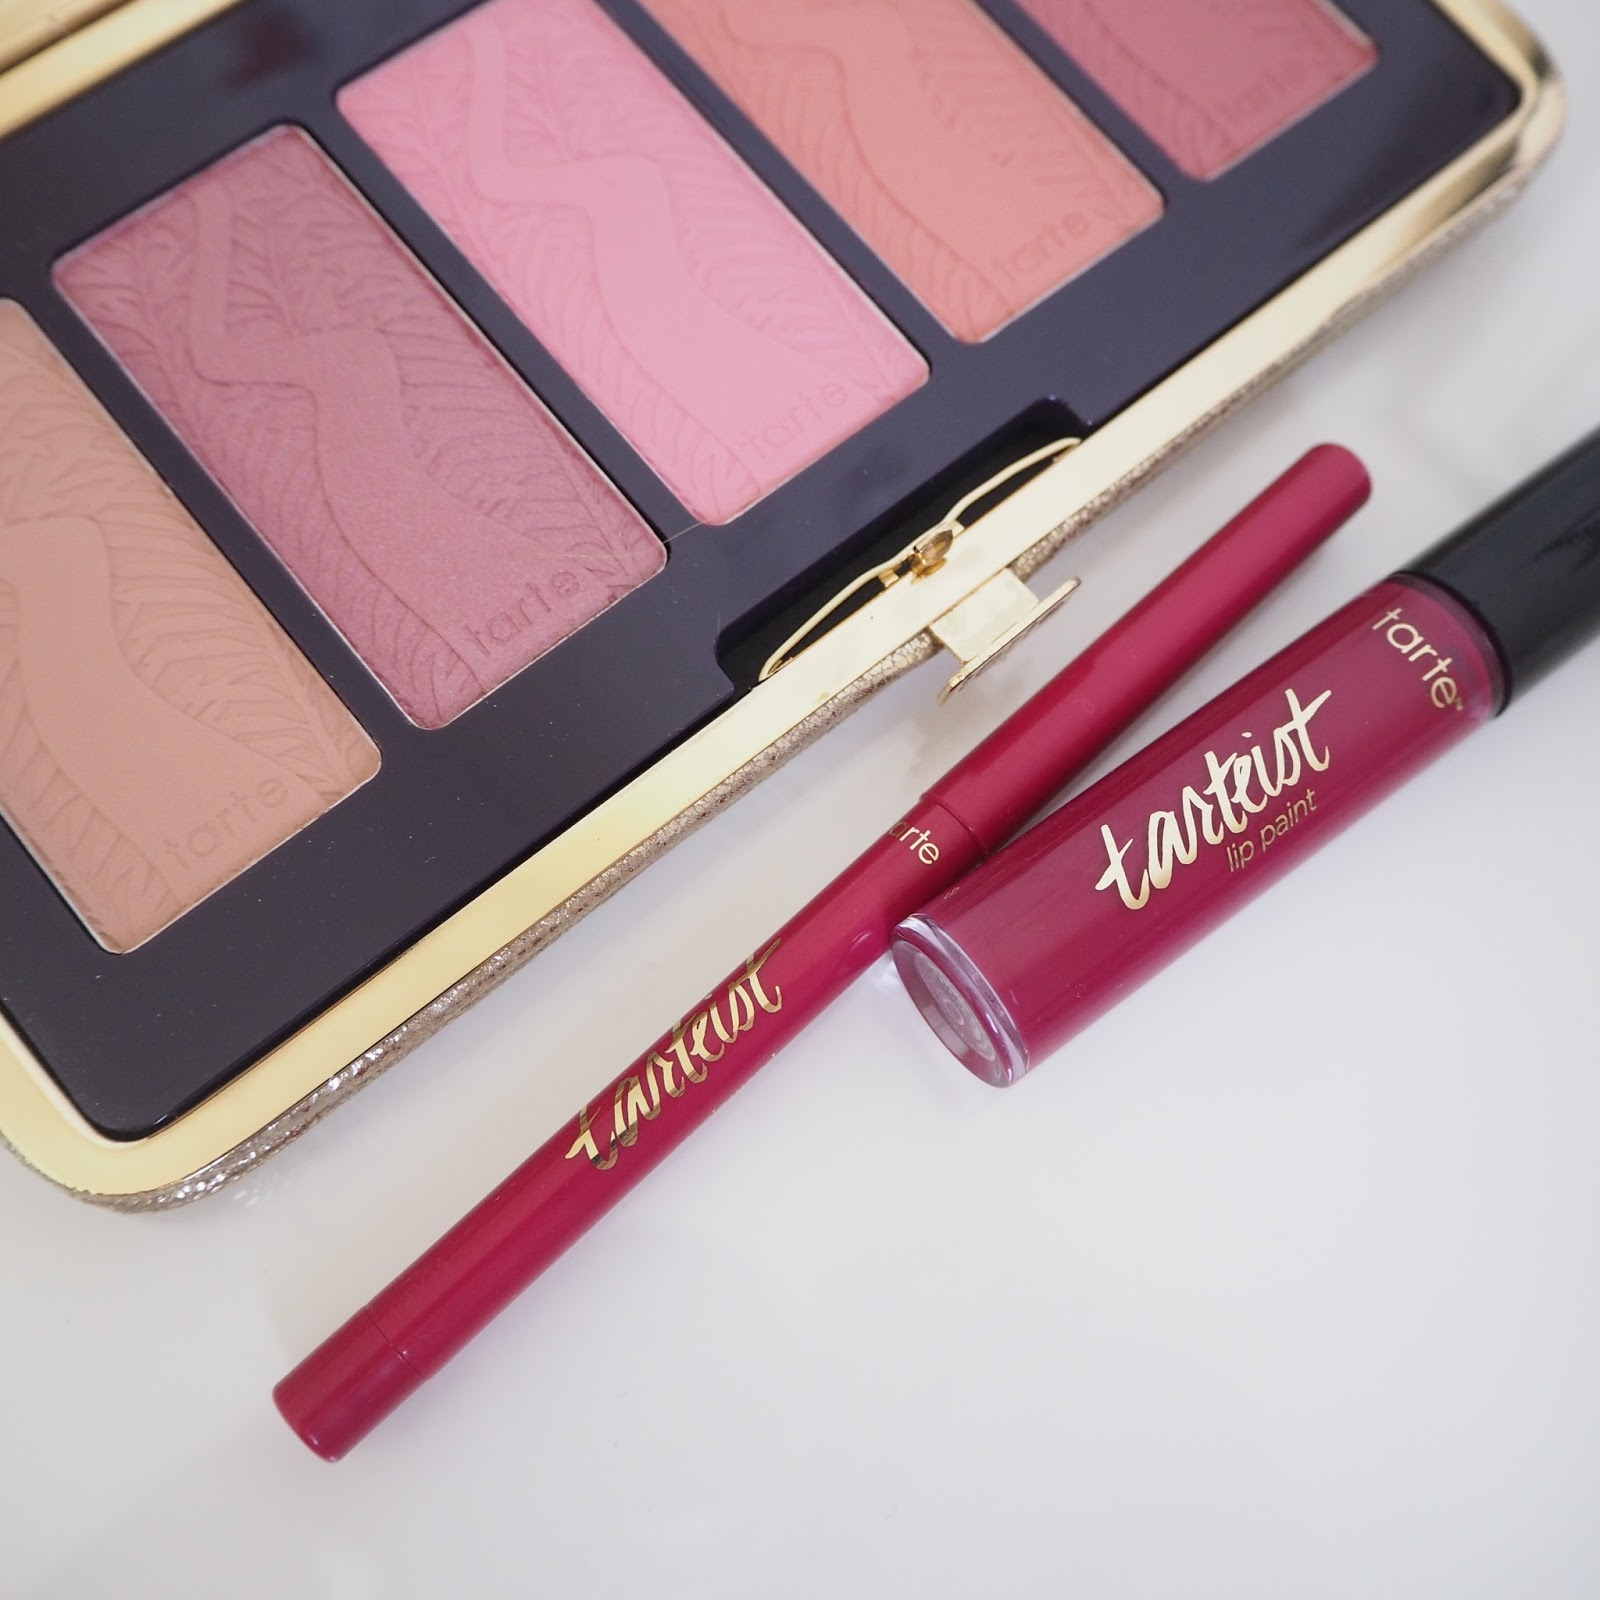 Tarte Tarteist lip paint in Love Spell and lip crayon in Magic Wand